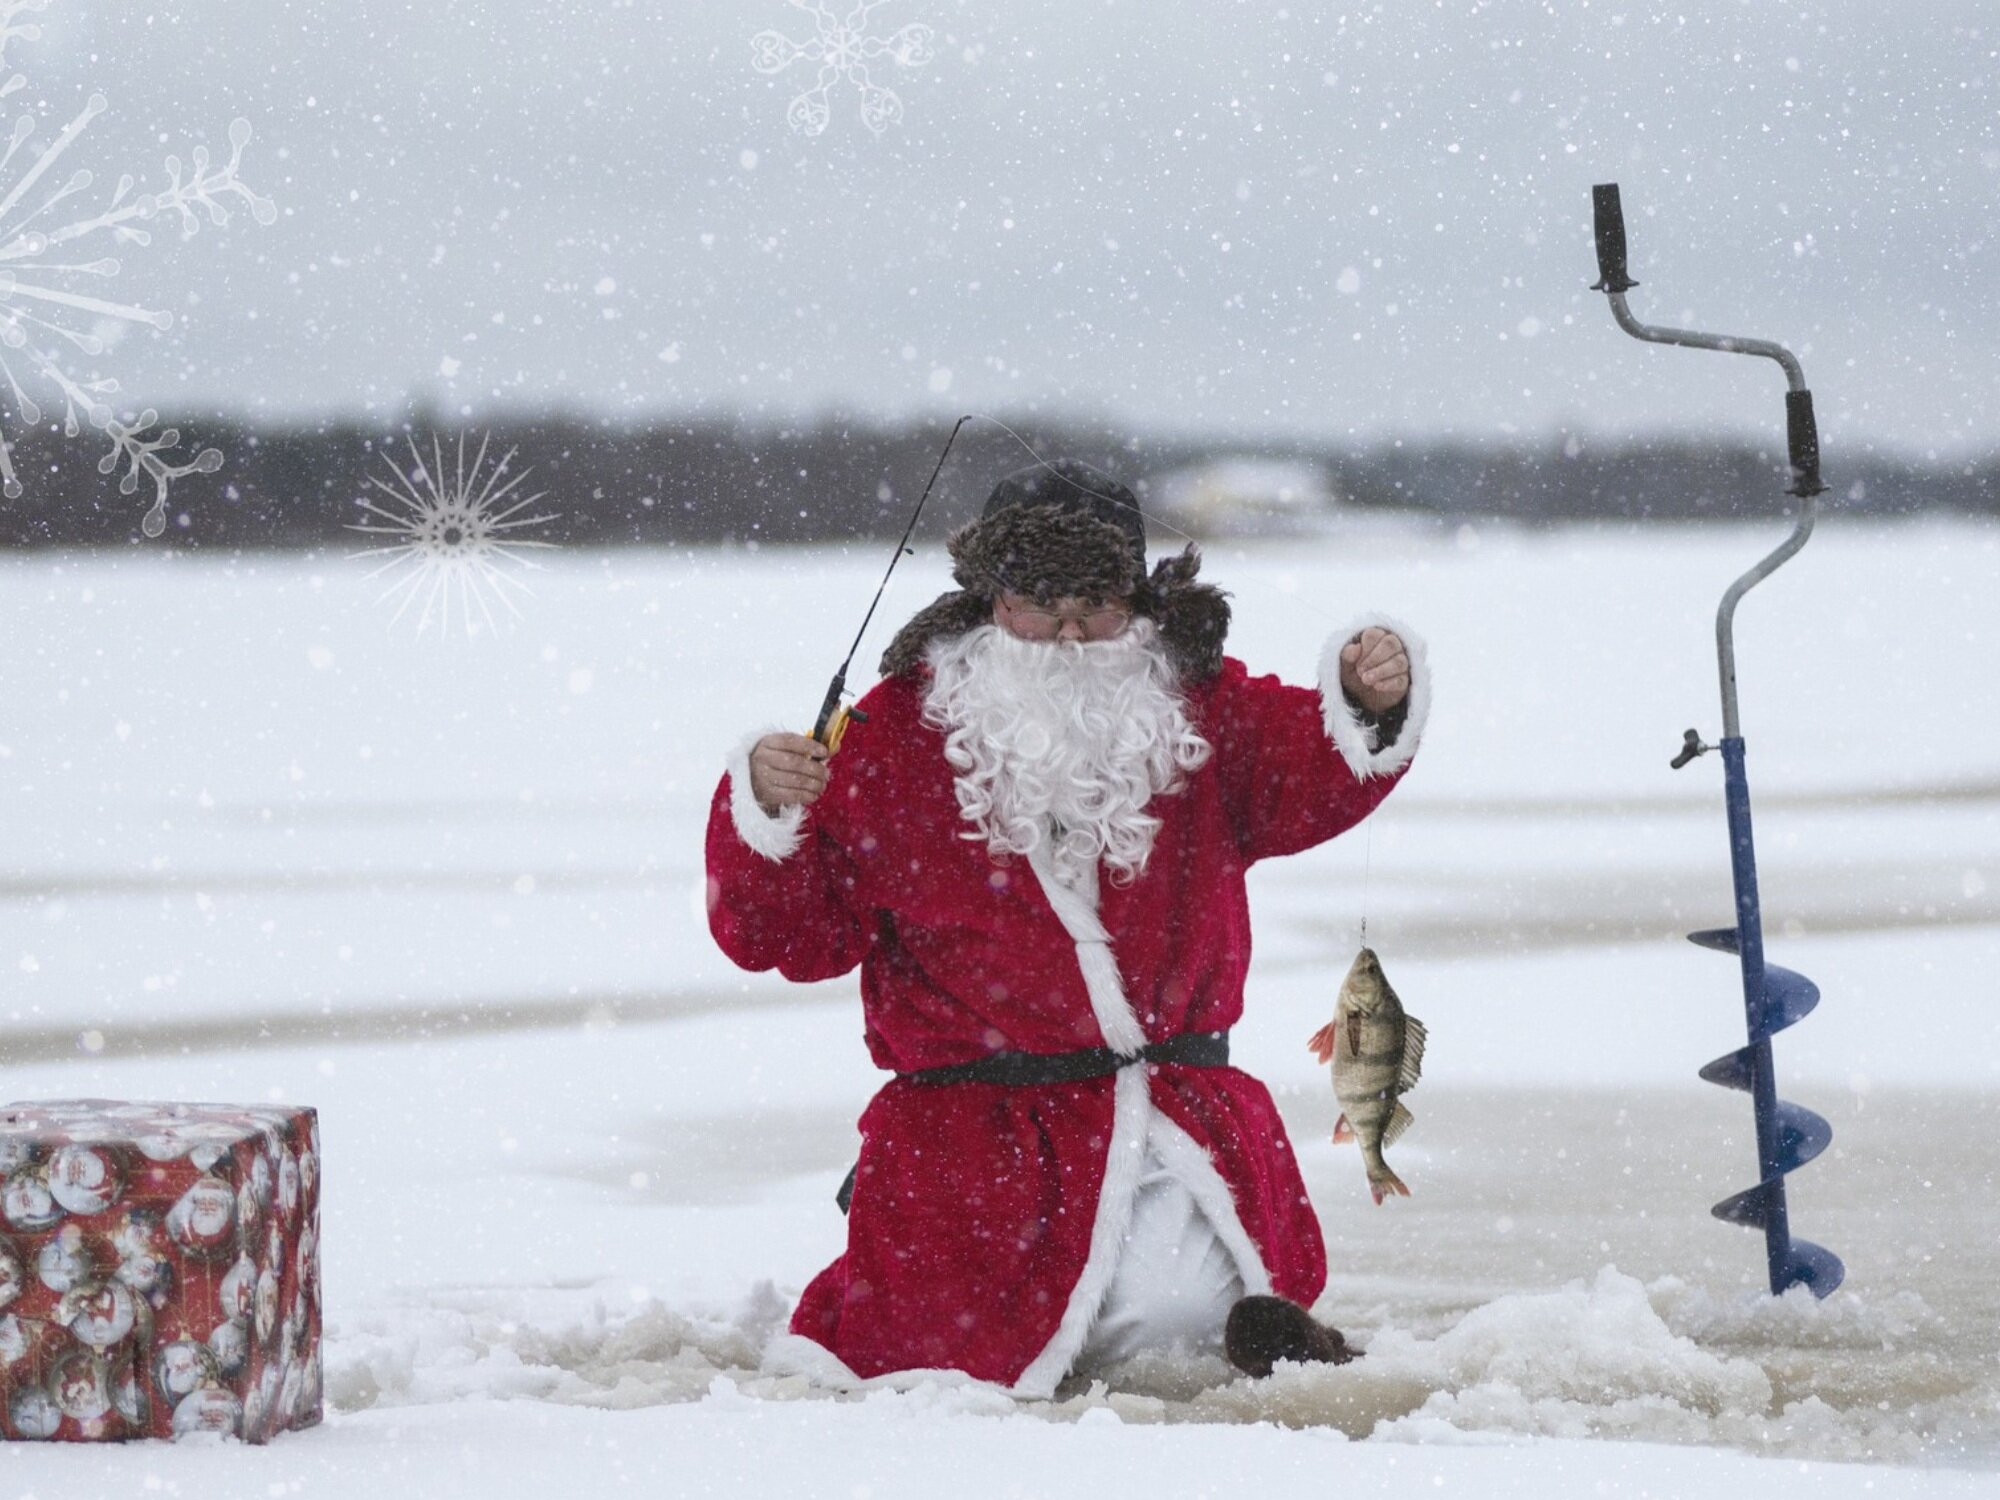 Christmas 2021 Buying Guide 17 Christmas Gift Ideas For Fishermen A 2021 Buyer S Guide Rugged Man Tool Reviews Tactical Reviews Outdoor Gear Reviews Gear For Hunters Fishermen Websites For